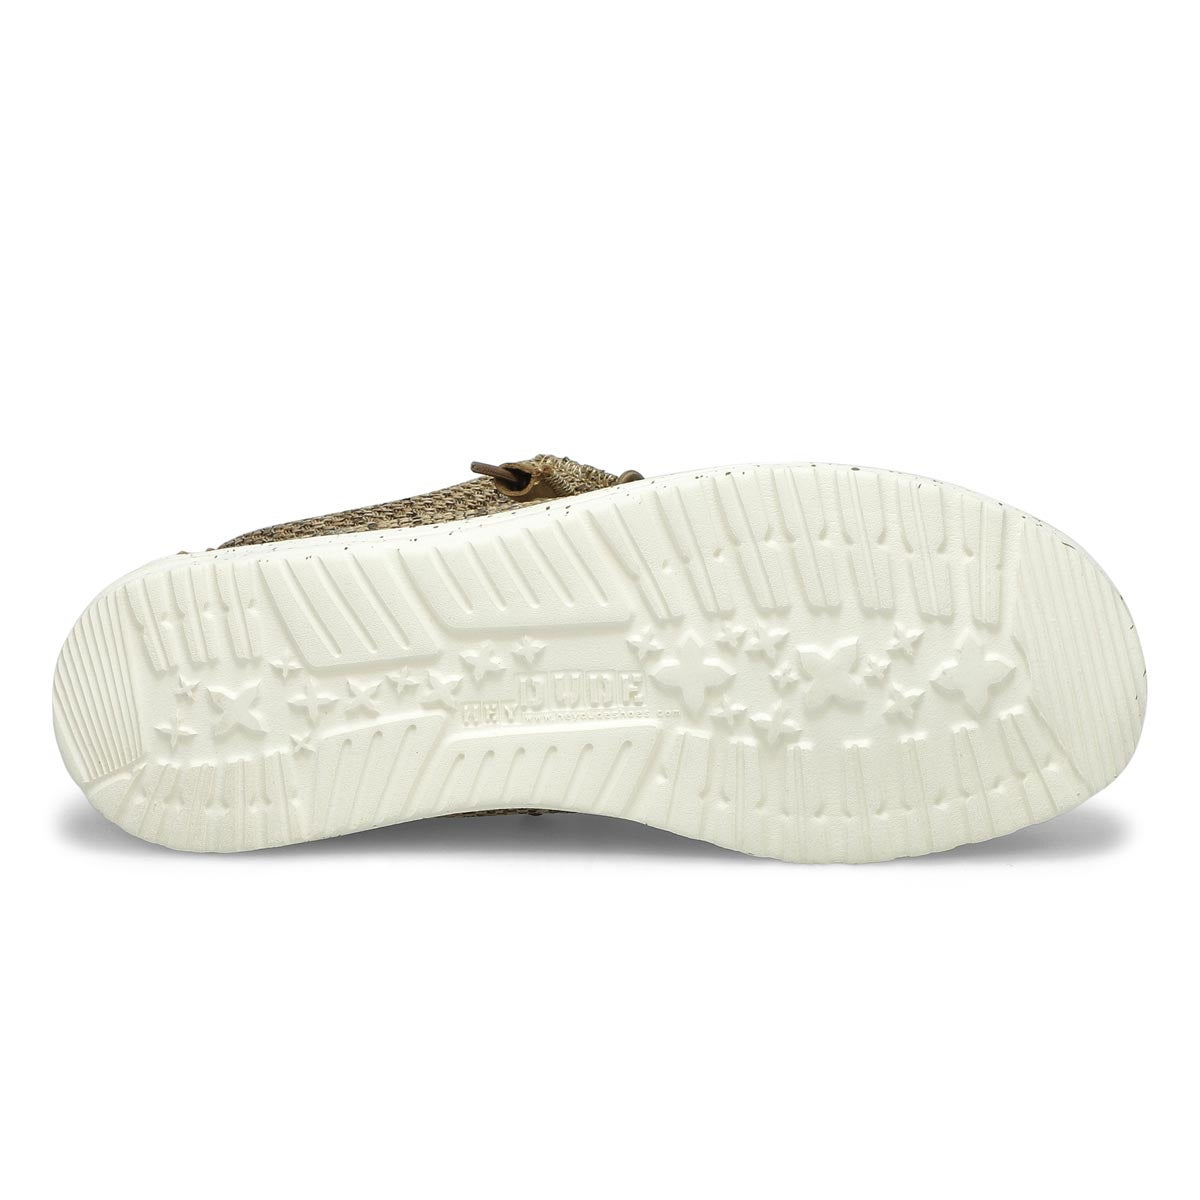 Chaussures décontractées WALLY SOX, brunes, hommes